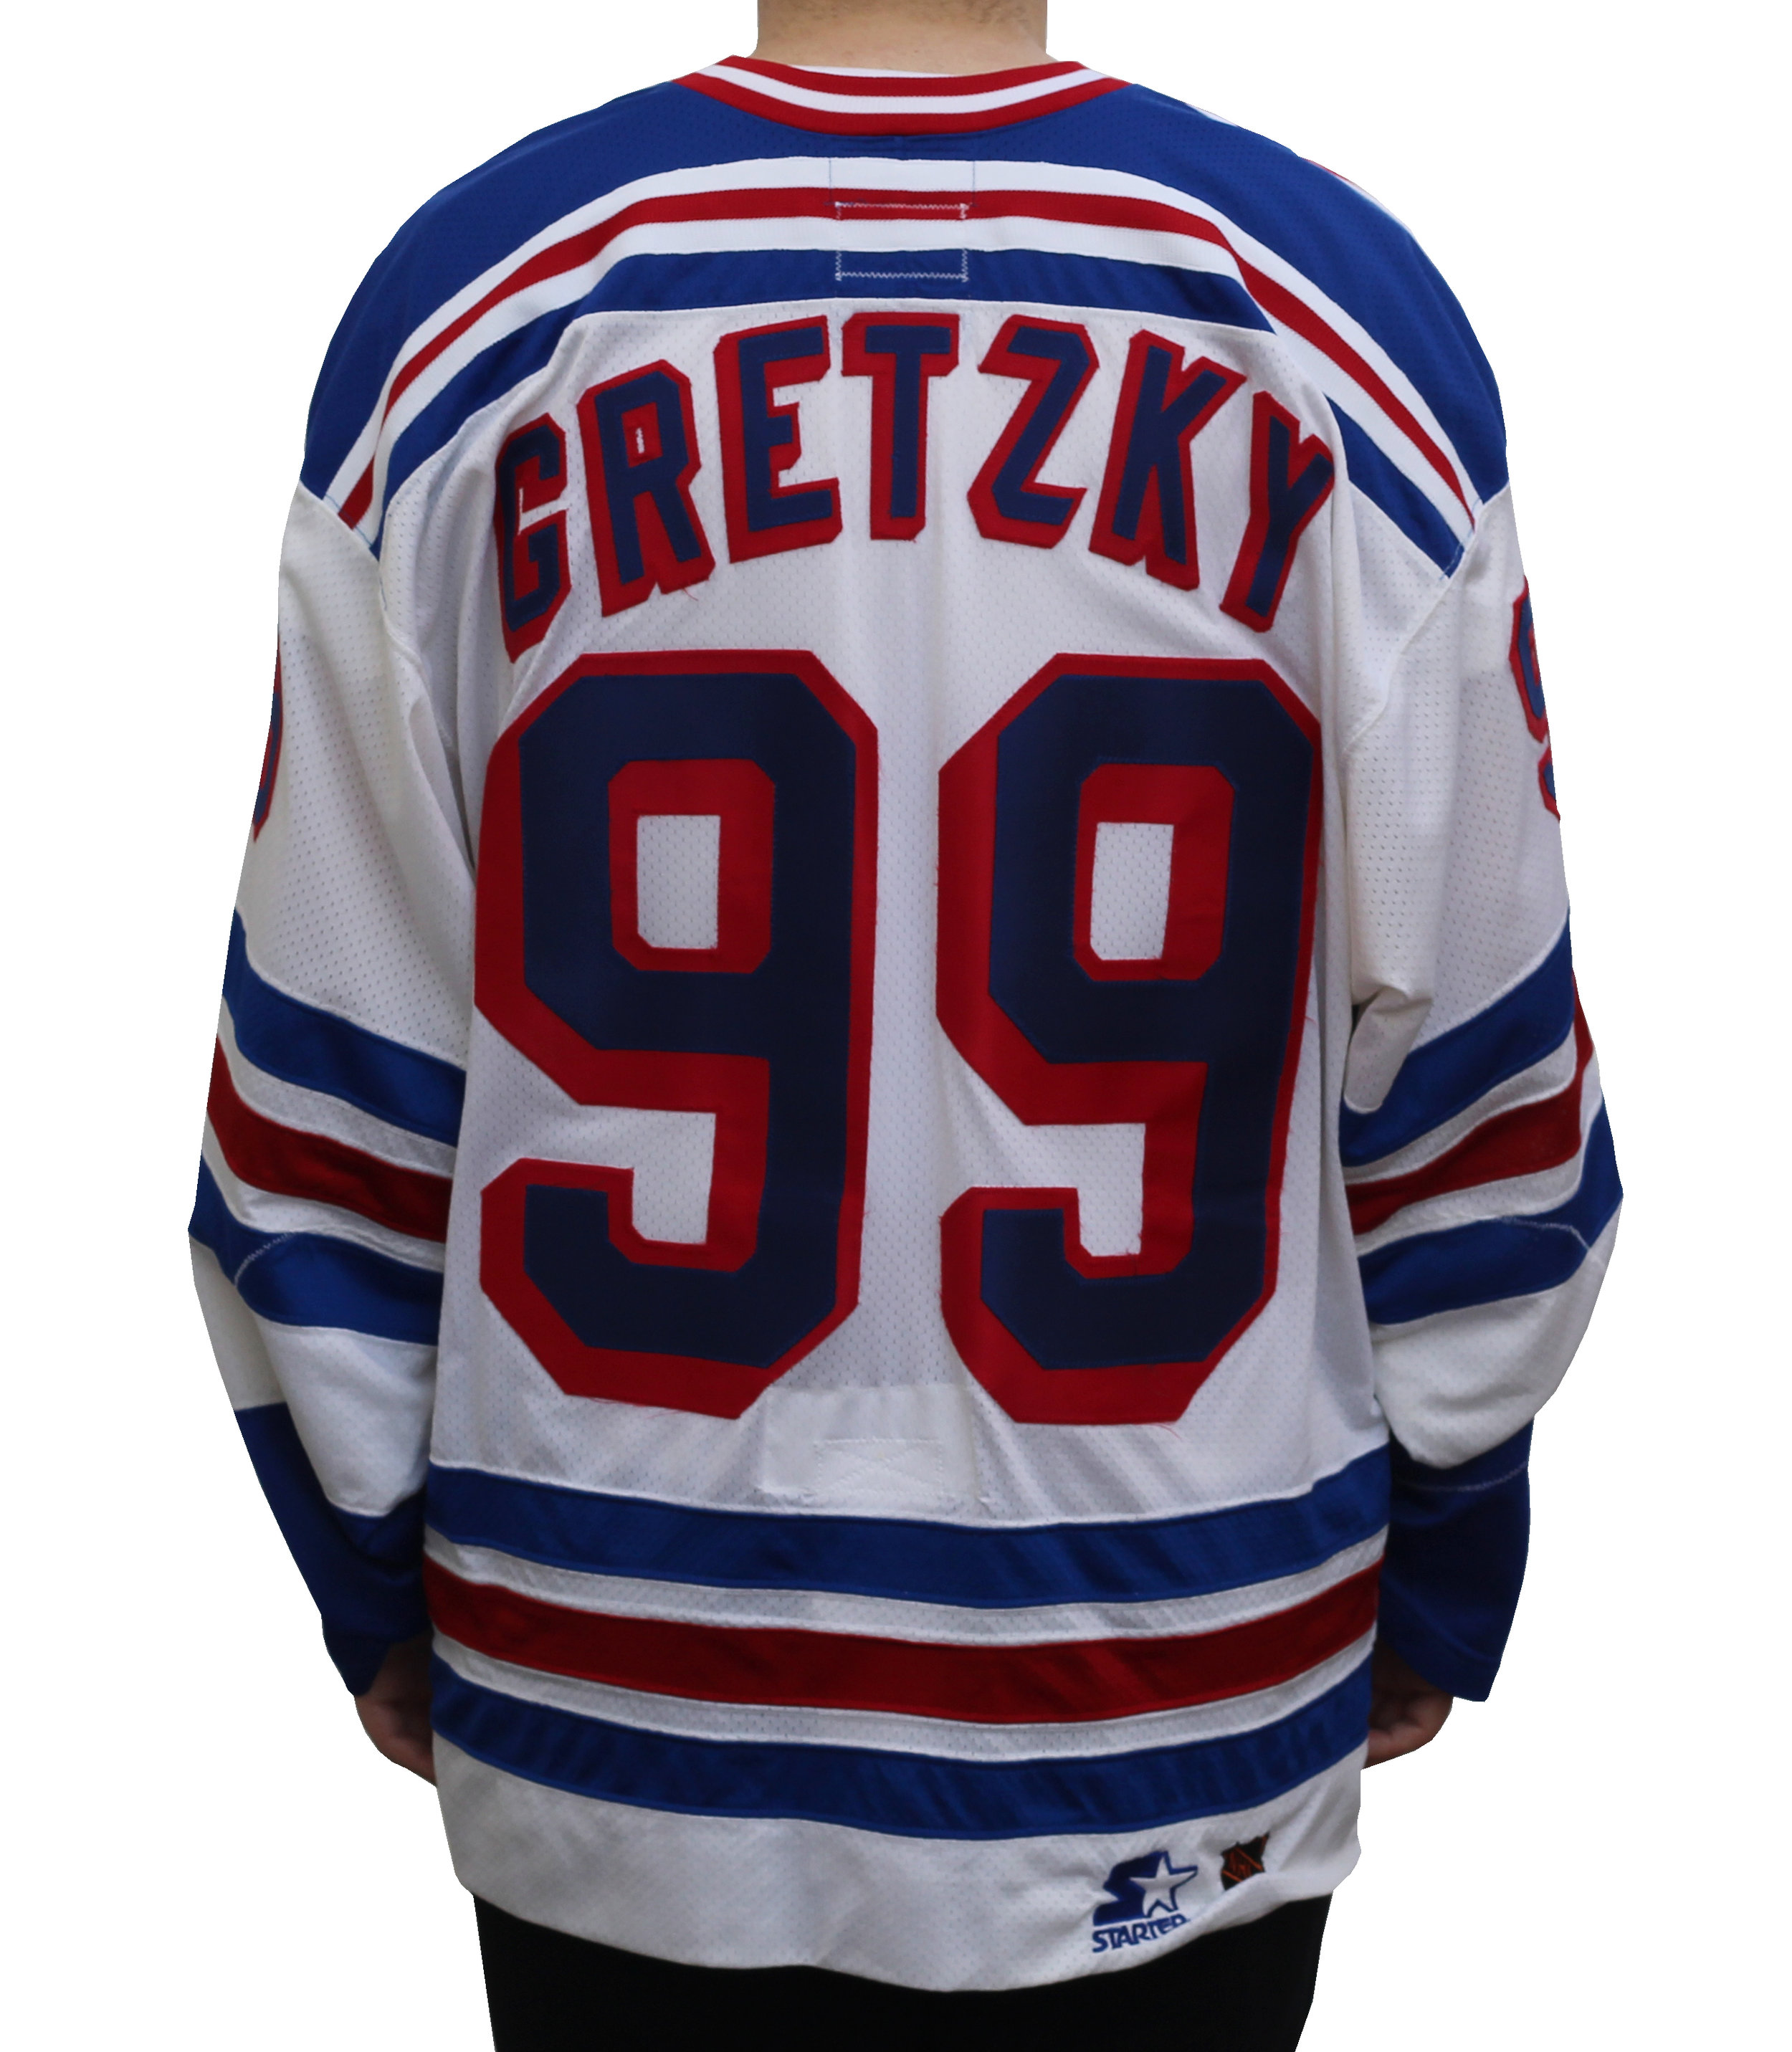 official photos 23c2a d173a Starter New York Rangers Wayne Gretzky Authentic Home Jersey (Size 54) —  Roots